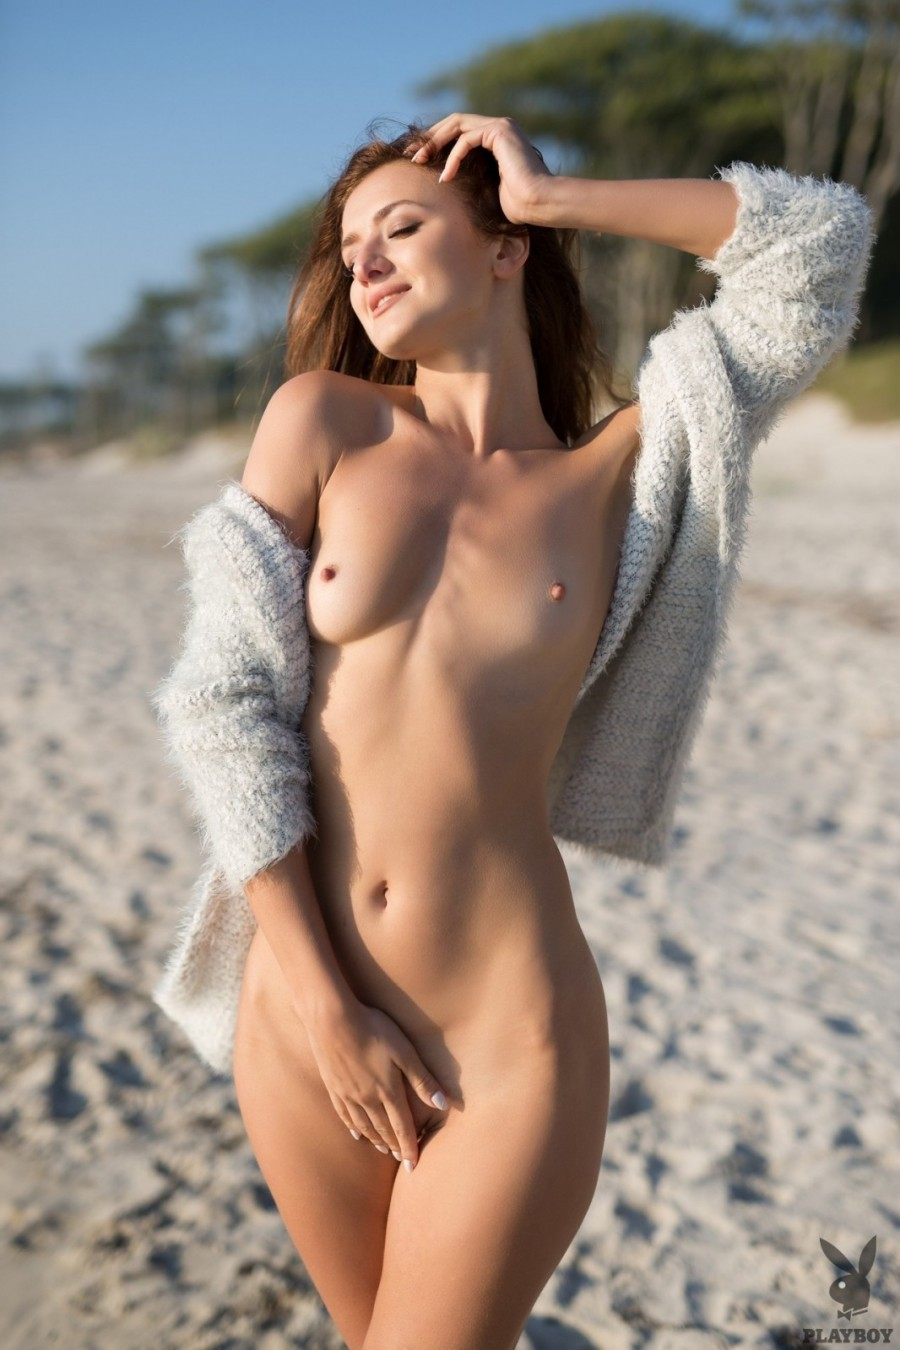 Brunette spends morning on beach